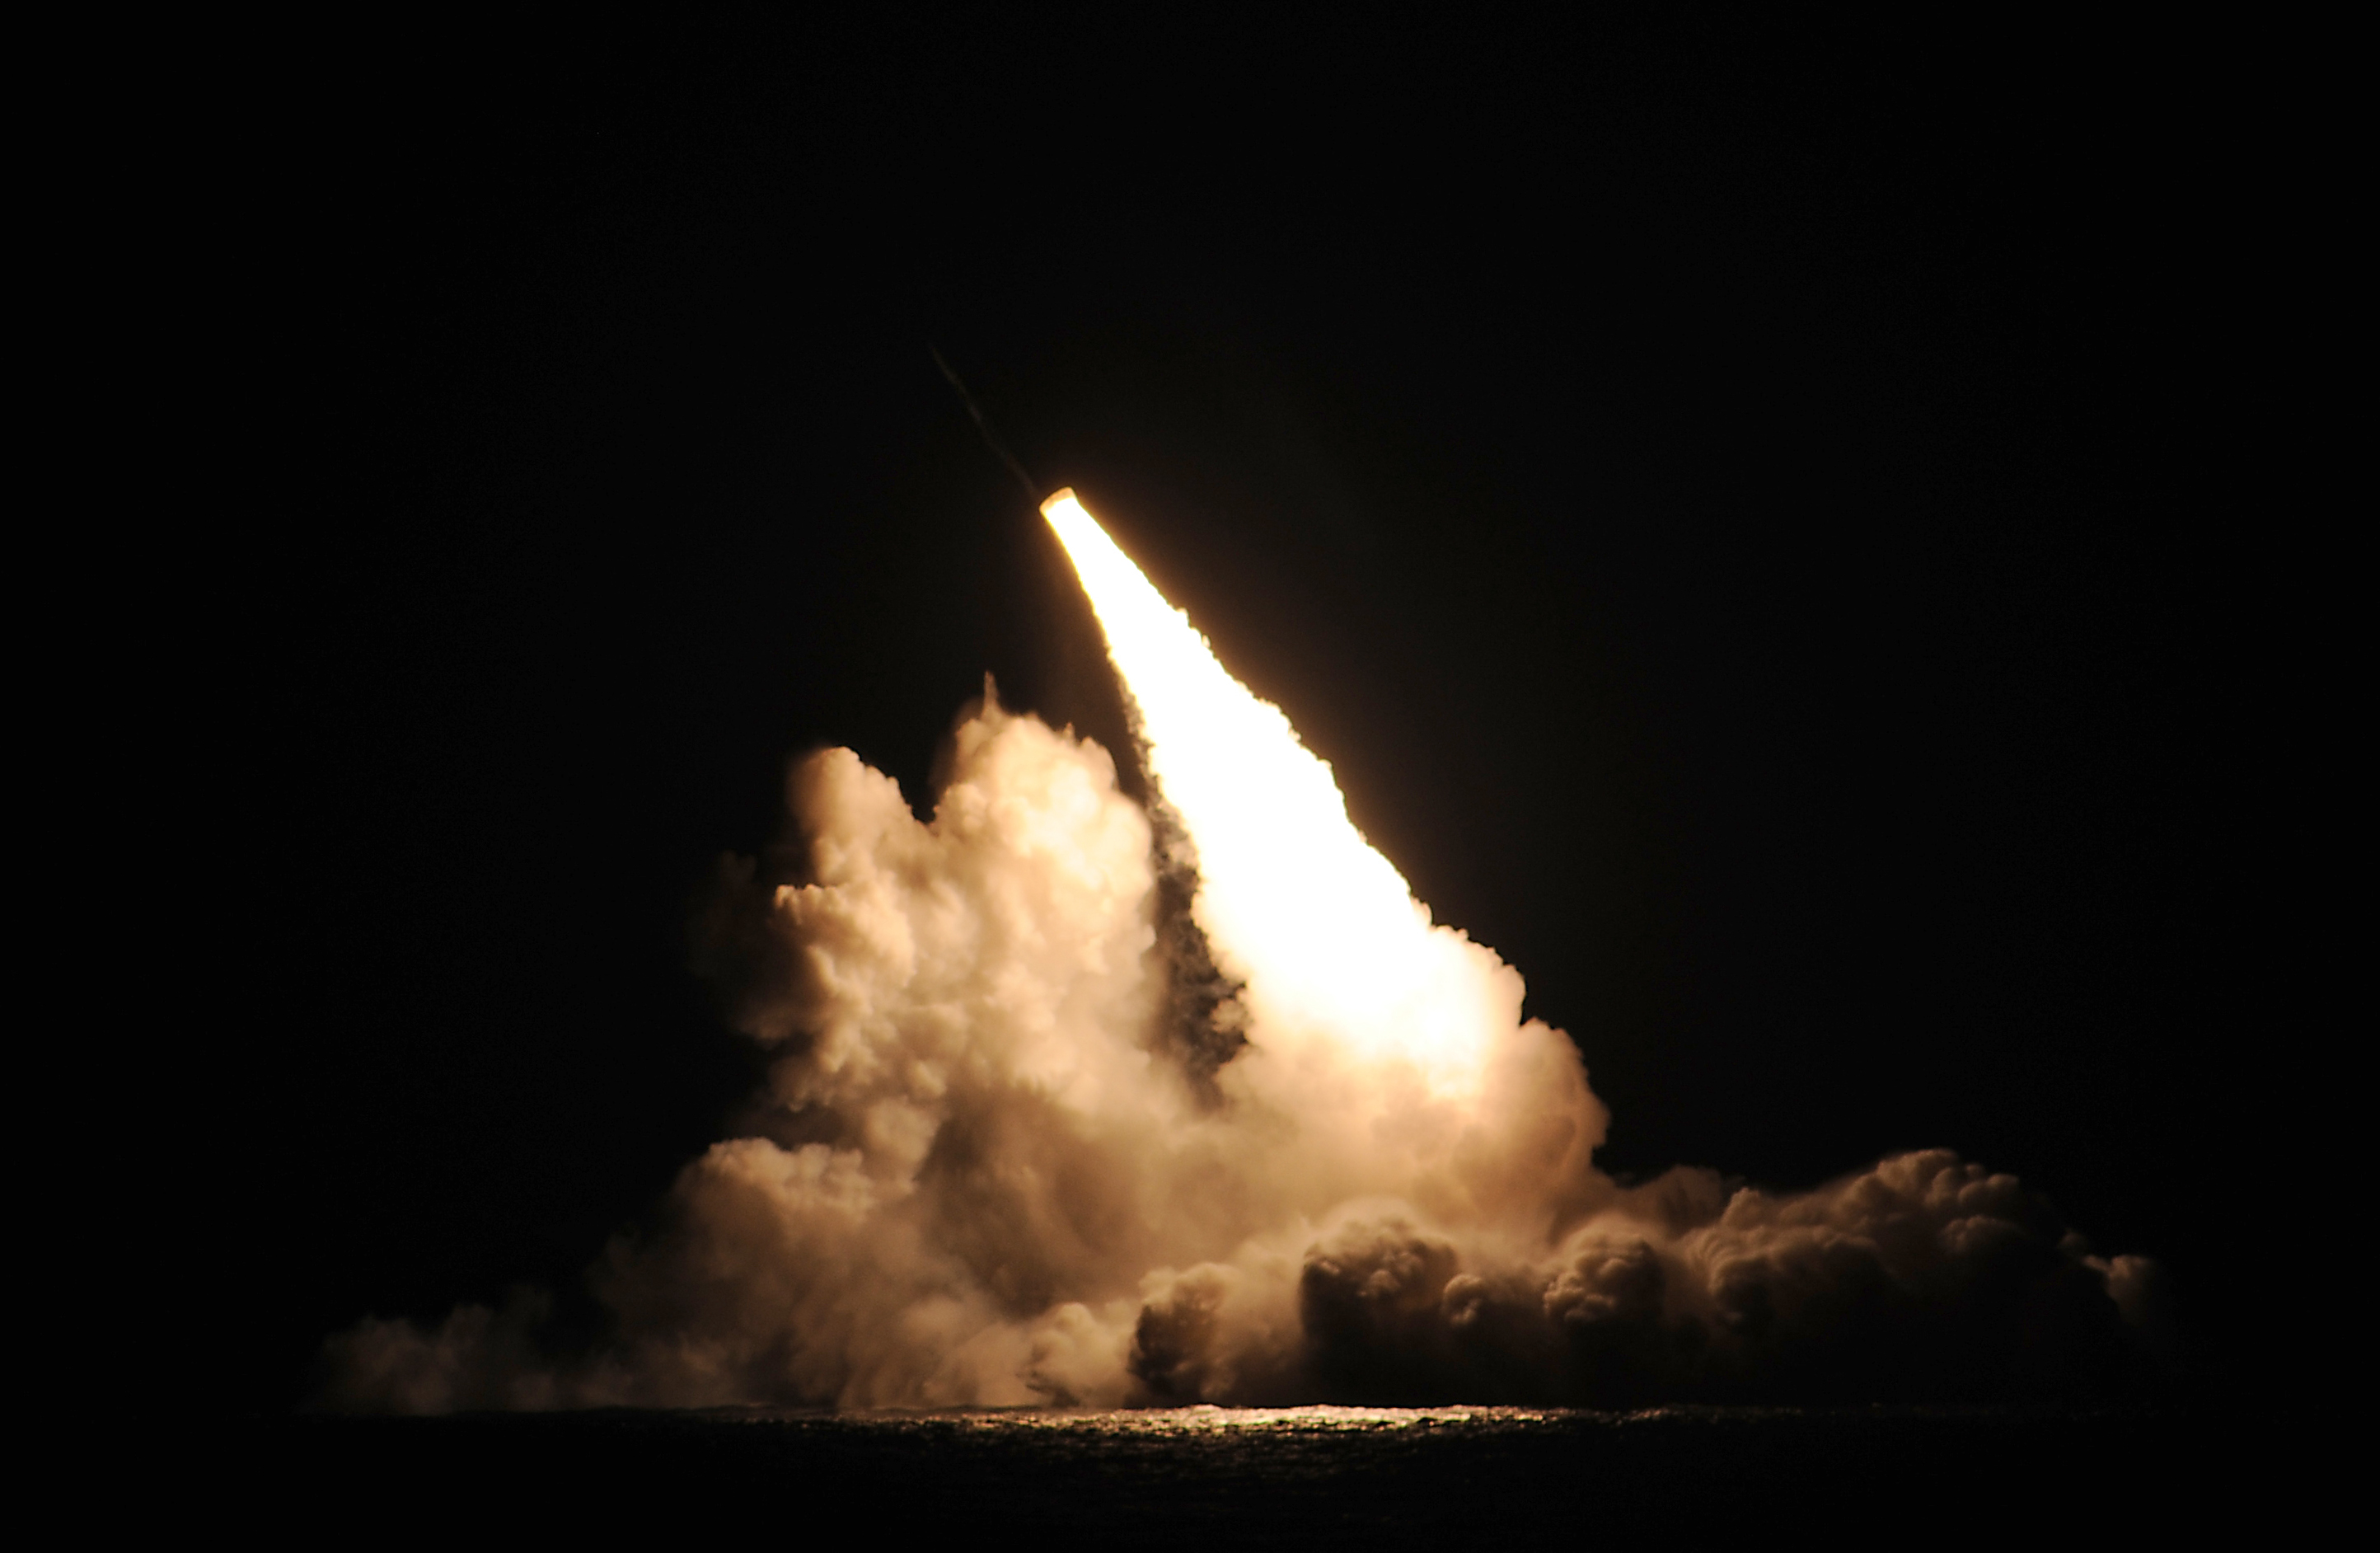 (Navy photo) A Trident II ballistic missile is launched from the USS Kentucky during an unarmed missile test at the Pacific Test Range on Nov. 7.